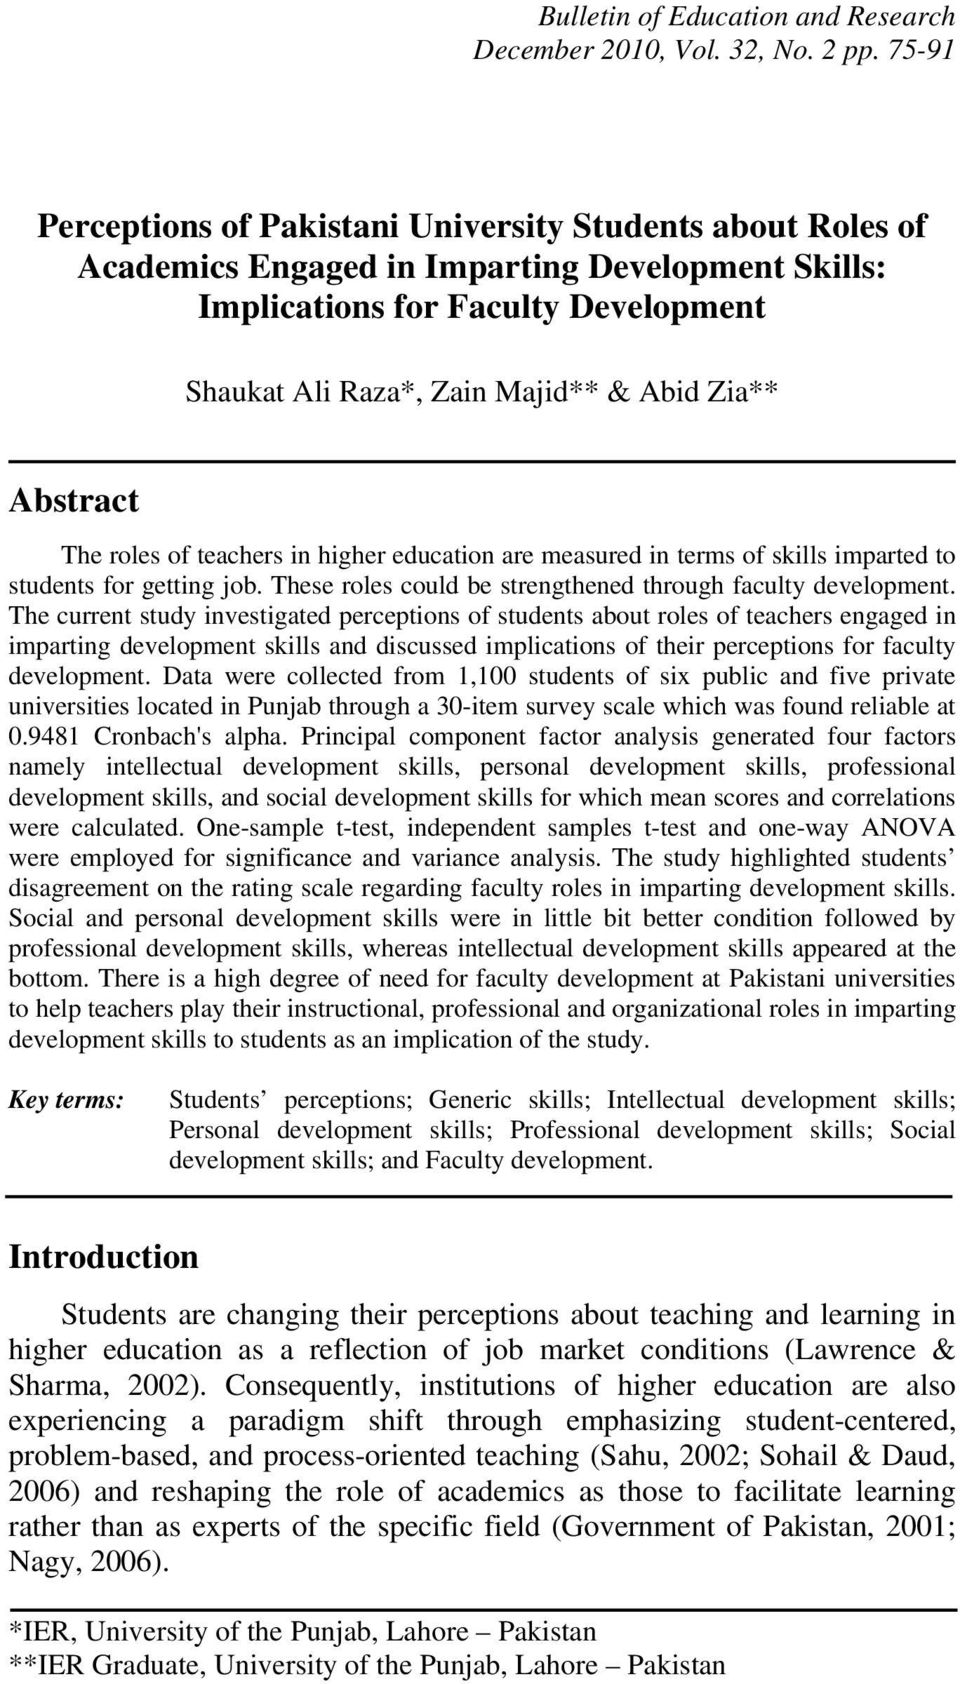 Abstract The roles of teachers in higher education are measured in terms of skills imparted to students for getting job. These roles could be strengthened through faculty development.